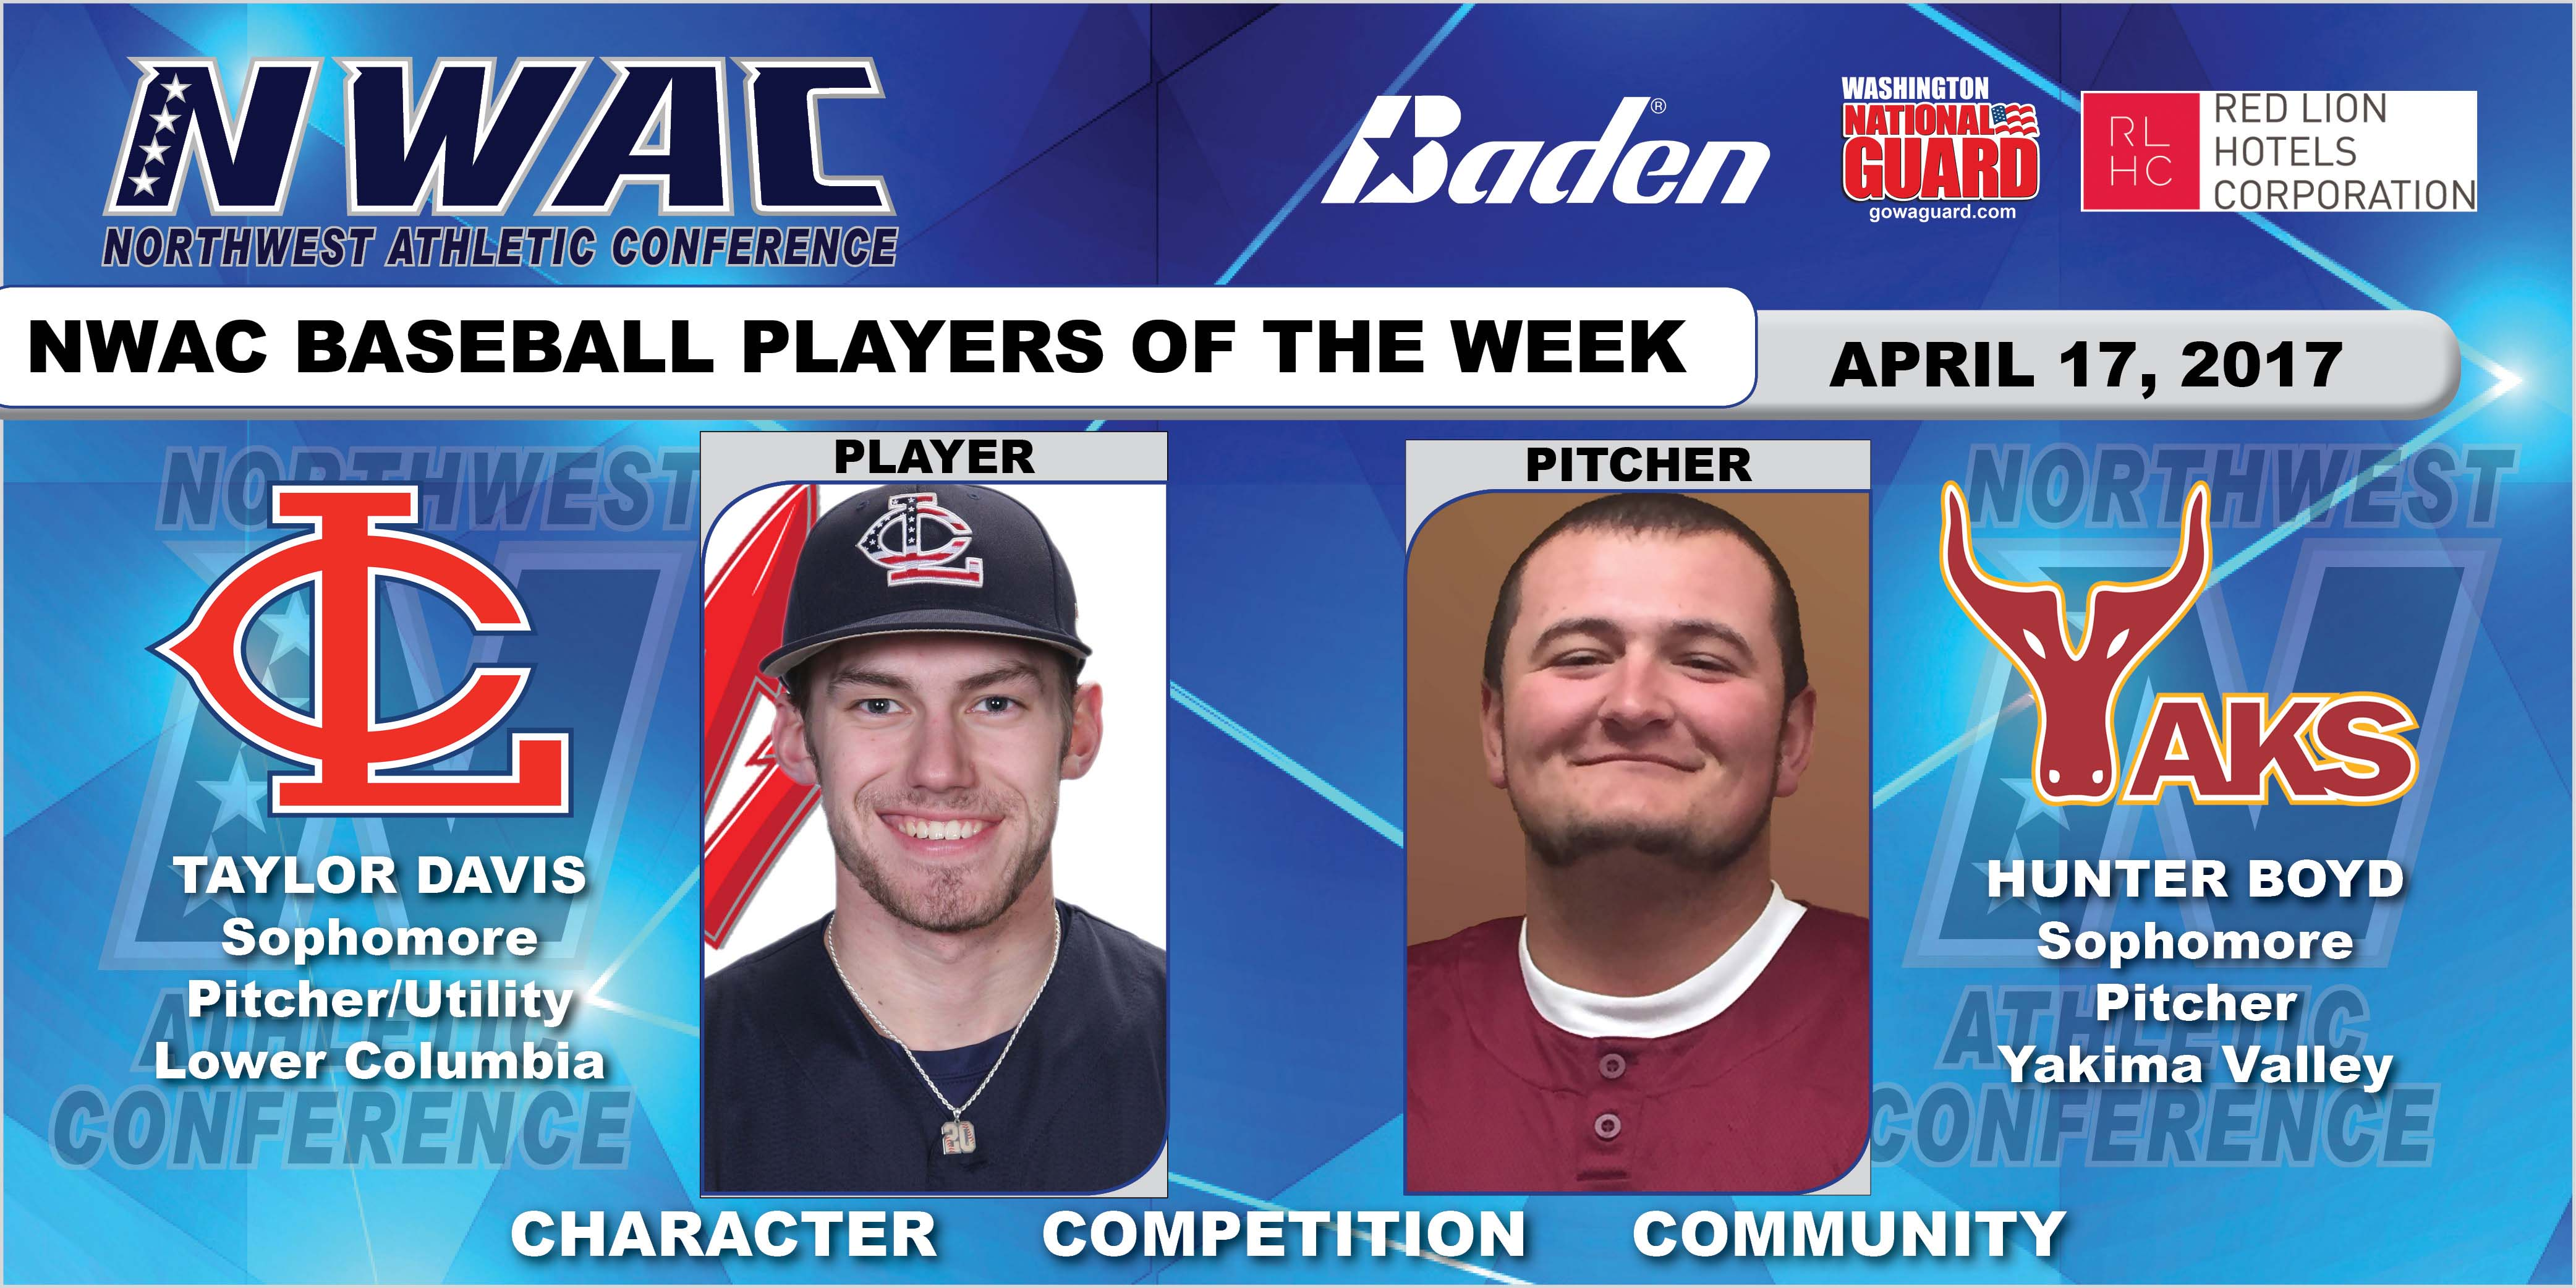 Taylor Davis and Hunter Boyd player of the week photo